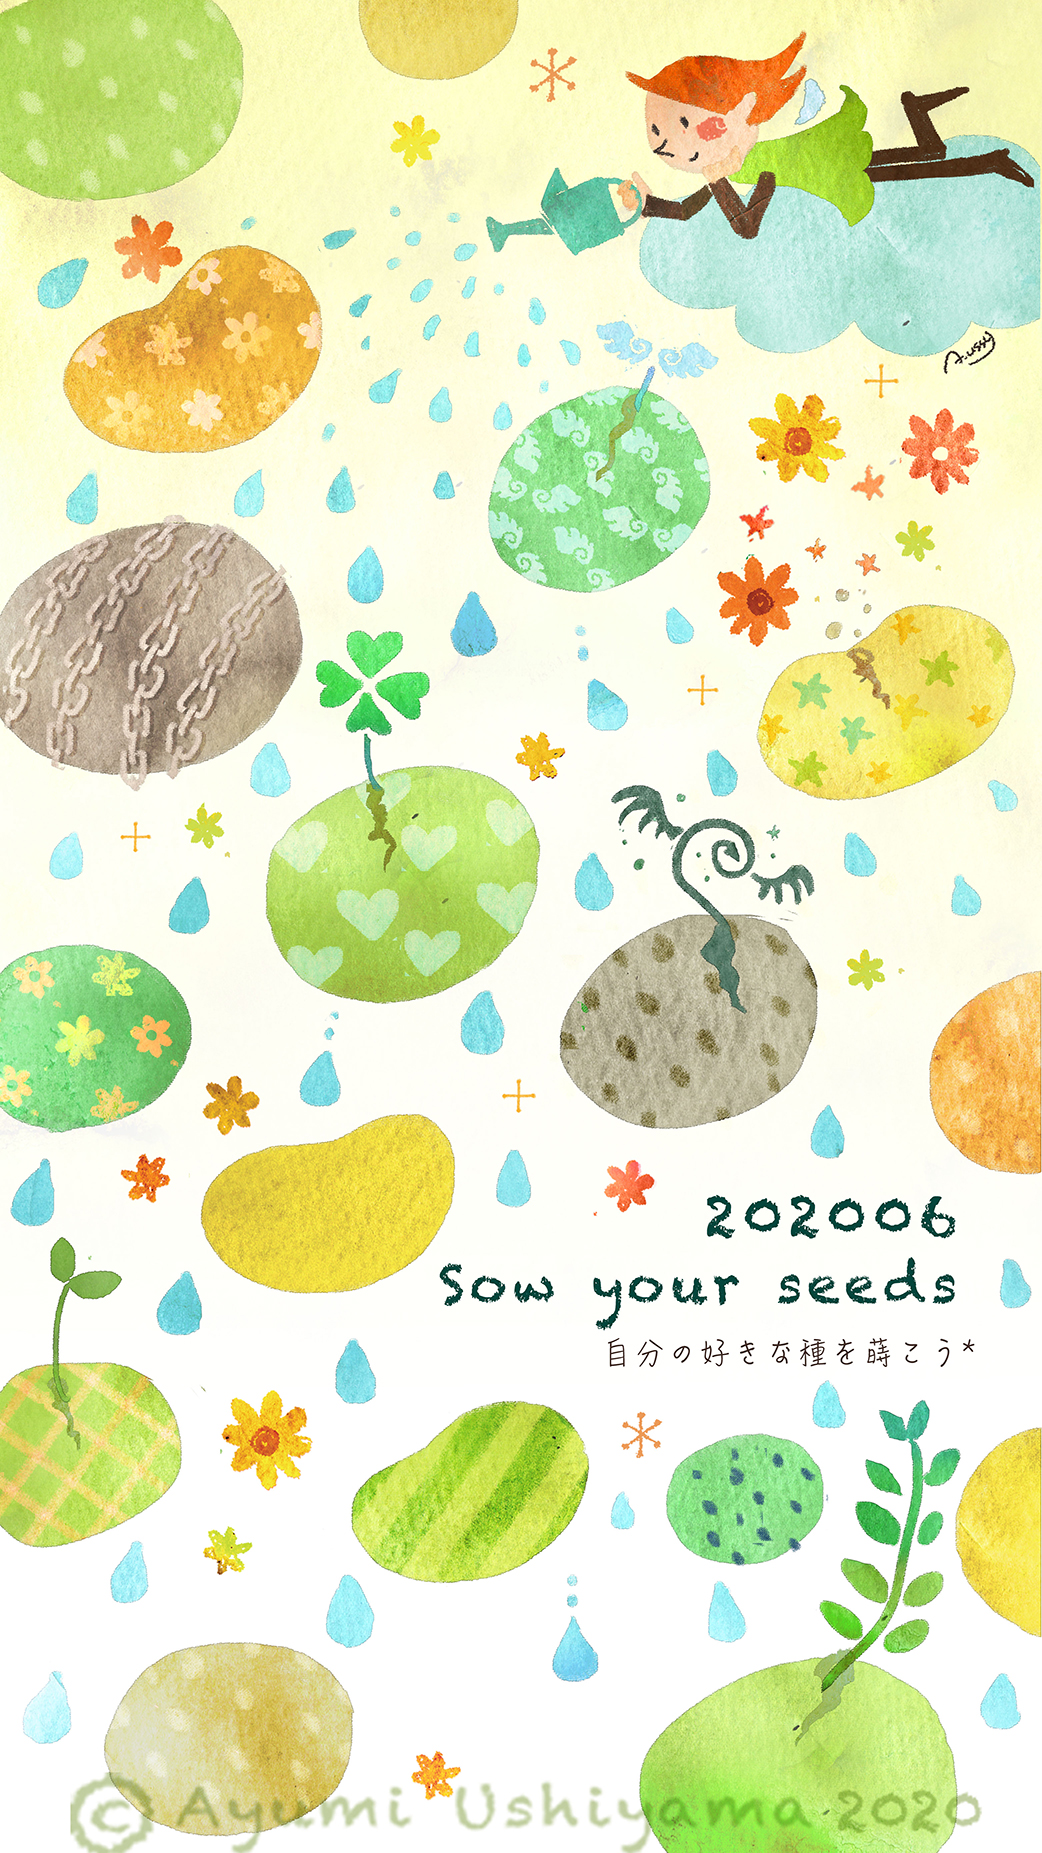 2020.06『Sow your seeds』